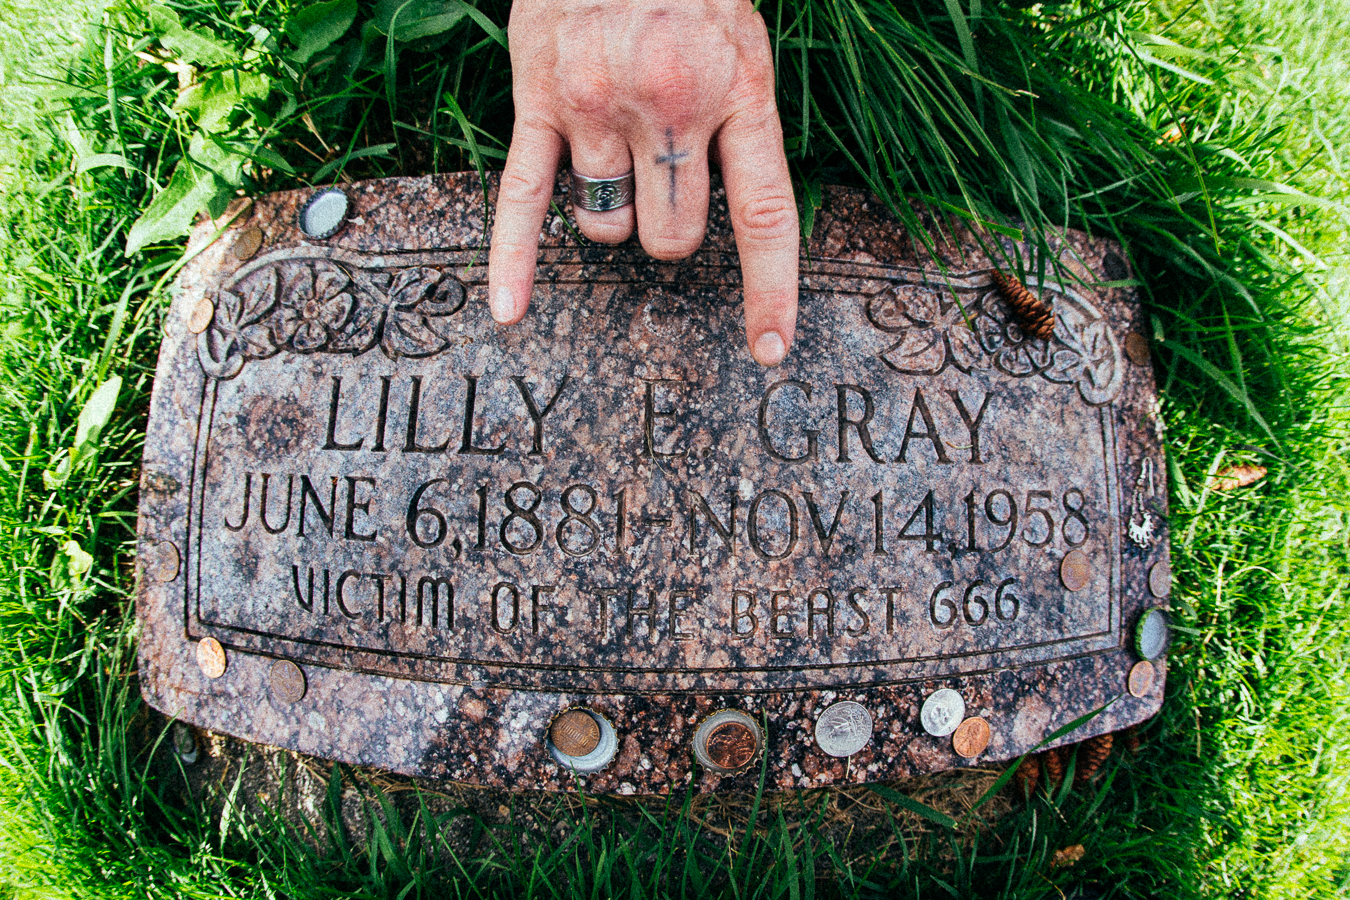 This one is bizarre, especially because this is prior to any metal rock genre was invented. Nobody knows exactly how she died, records just say she passed away from 'natural causes'. Even more weird, her husband who died years later is buried on the opposite side of the graveyard!